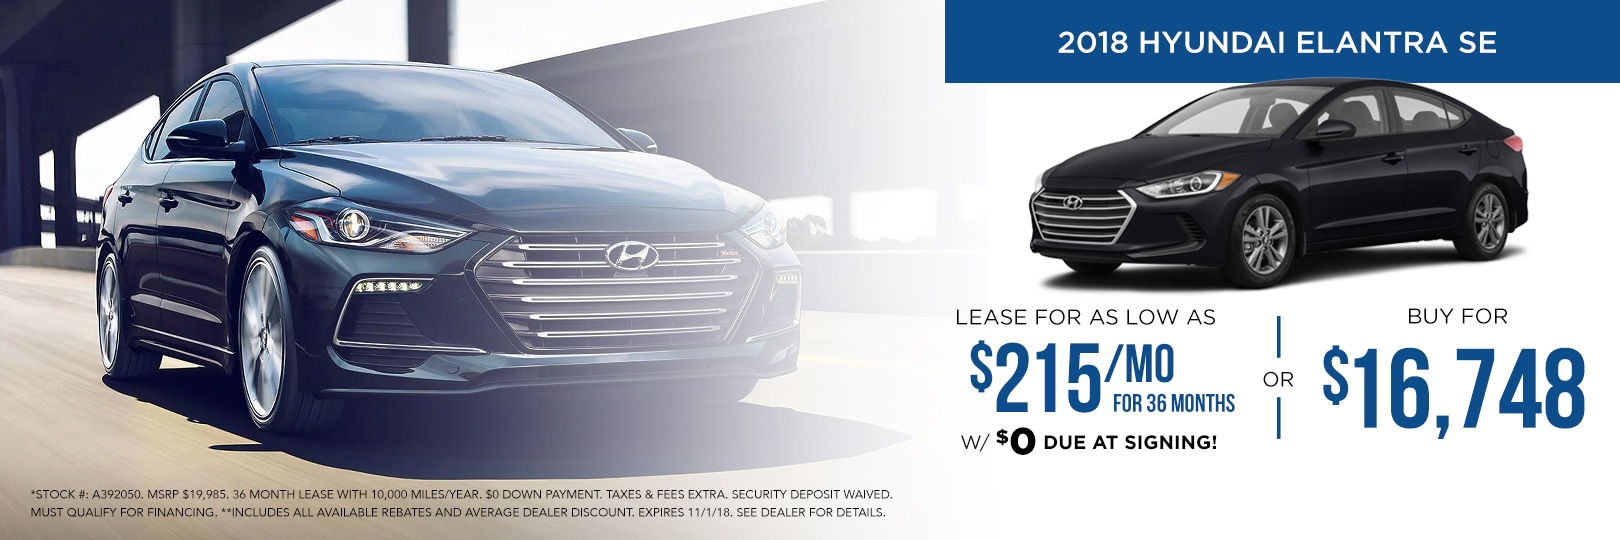 $0 Down Payment. Taxes U0026 Fees Extra. Security Deposit Waived. Must Qualify  For Financing. **Includes All Available Rebates And Average Dealer Discount.